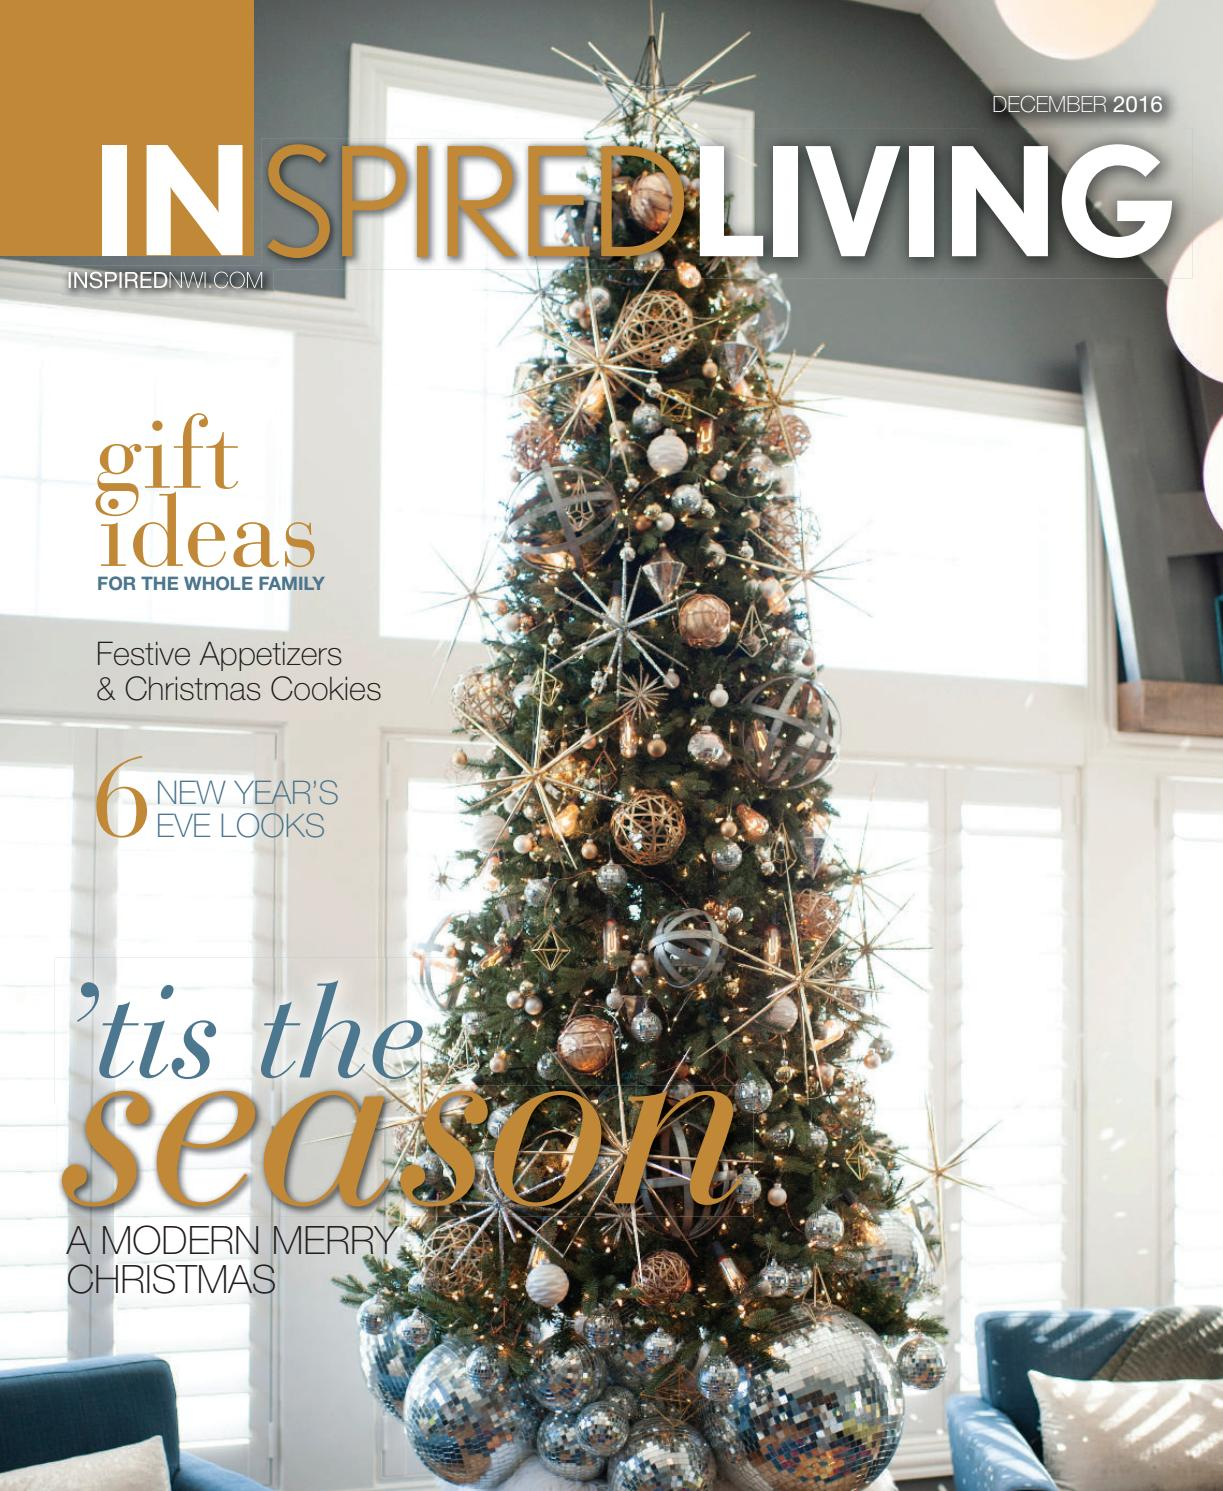 Inspired Living December 2017 by The Times of NWI - issuu